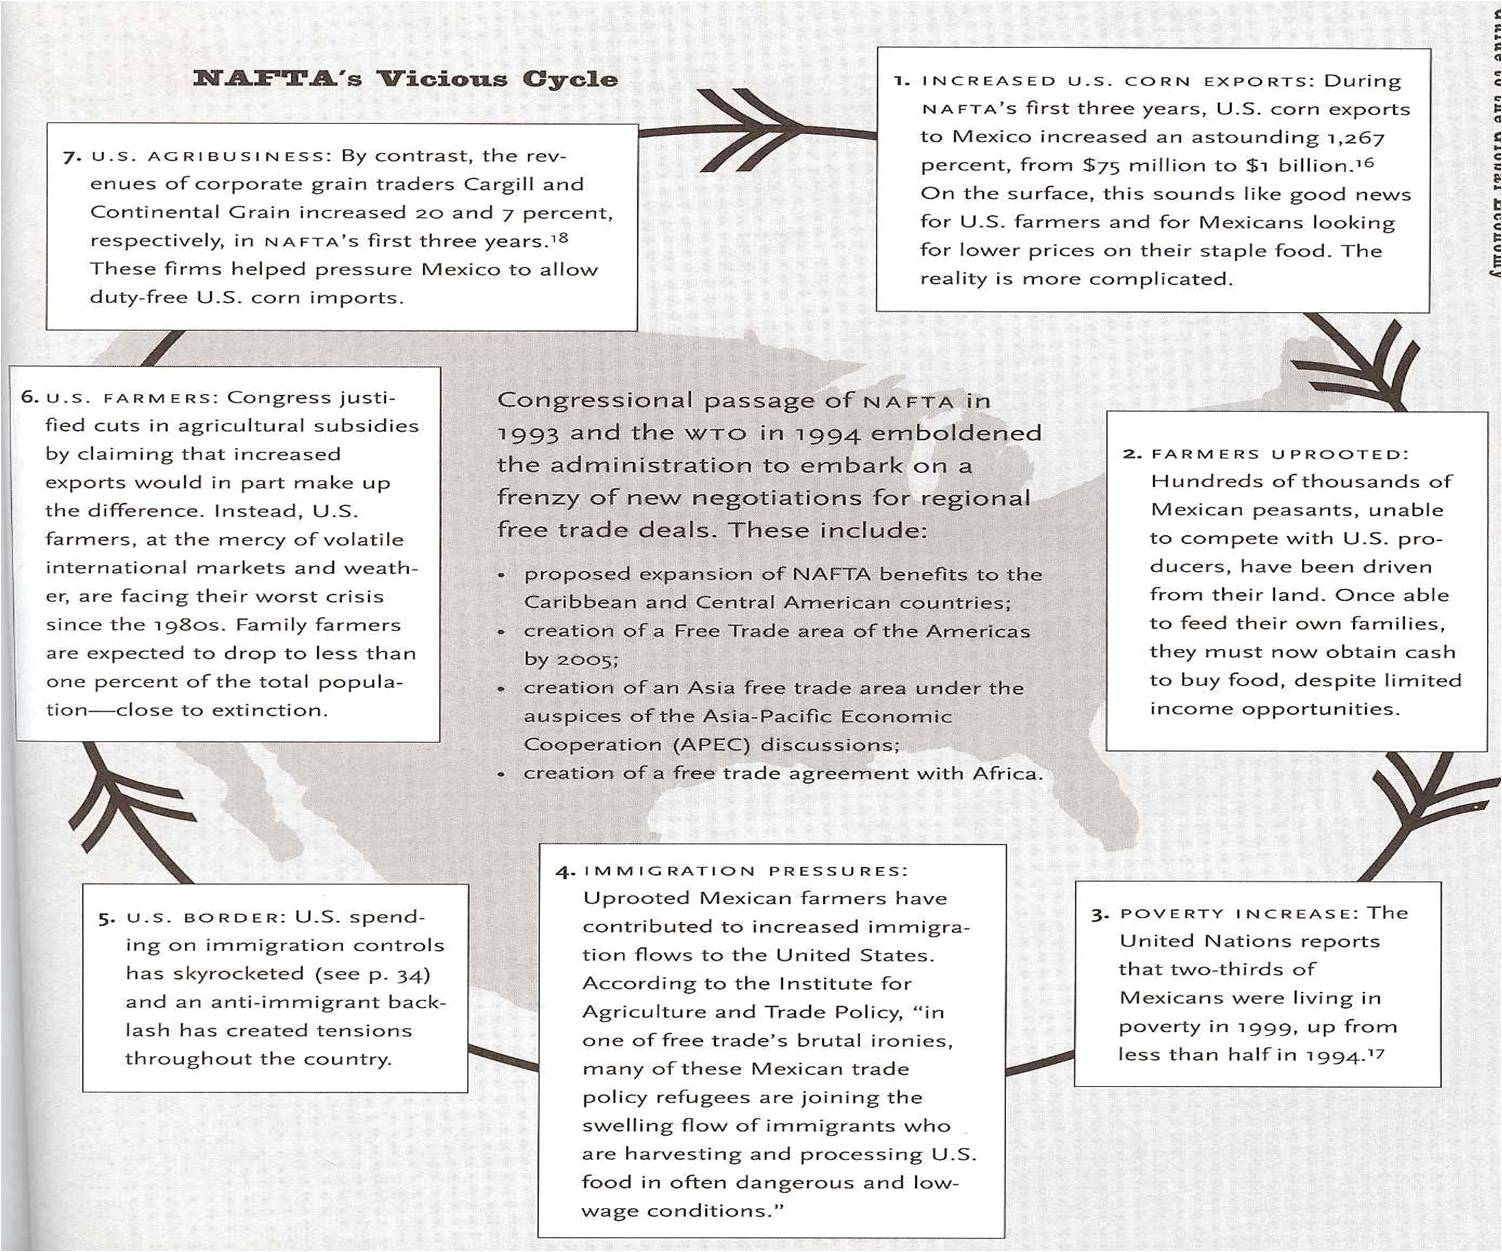 NAFTA's vicious cycle